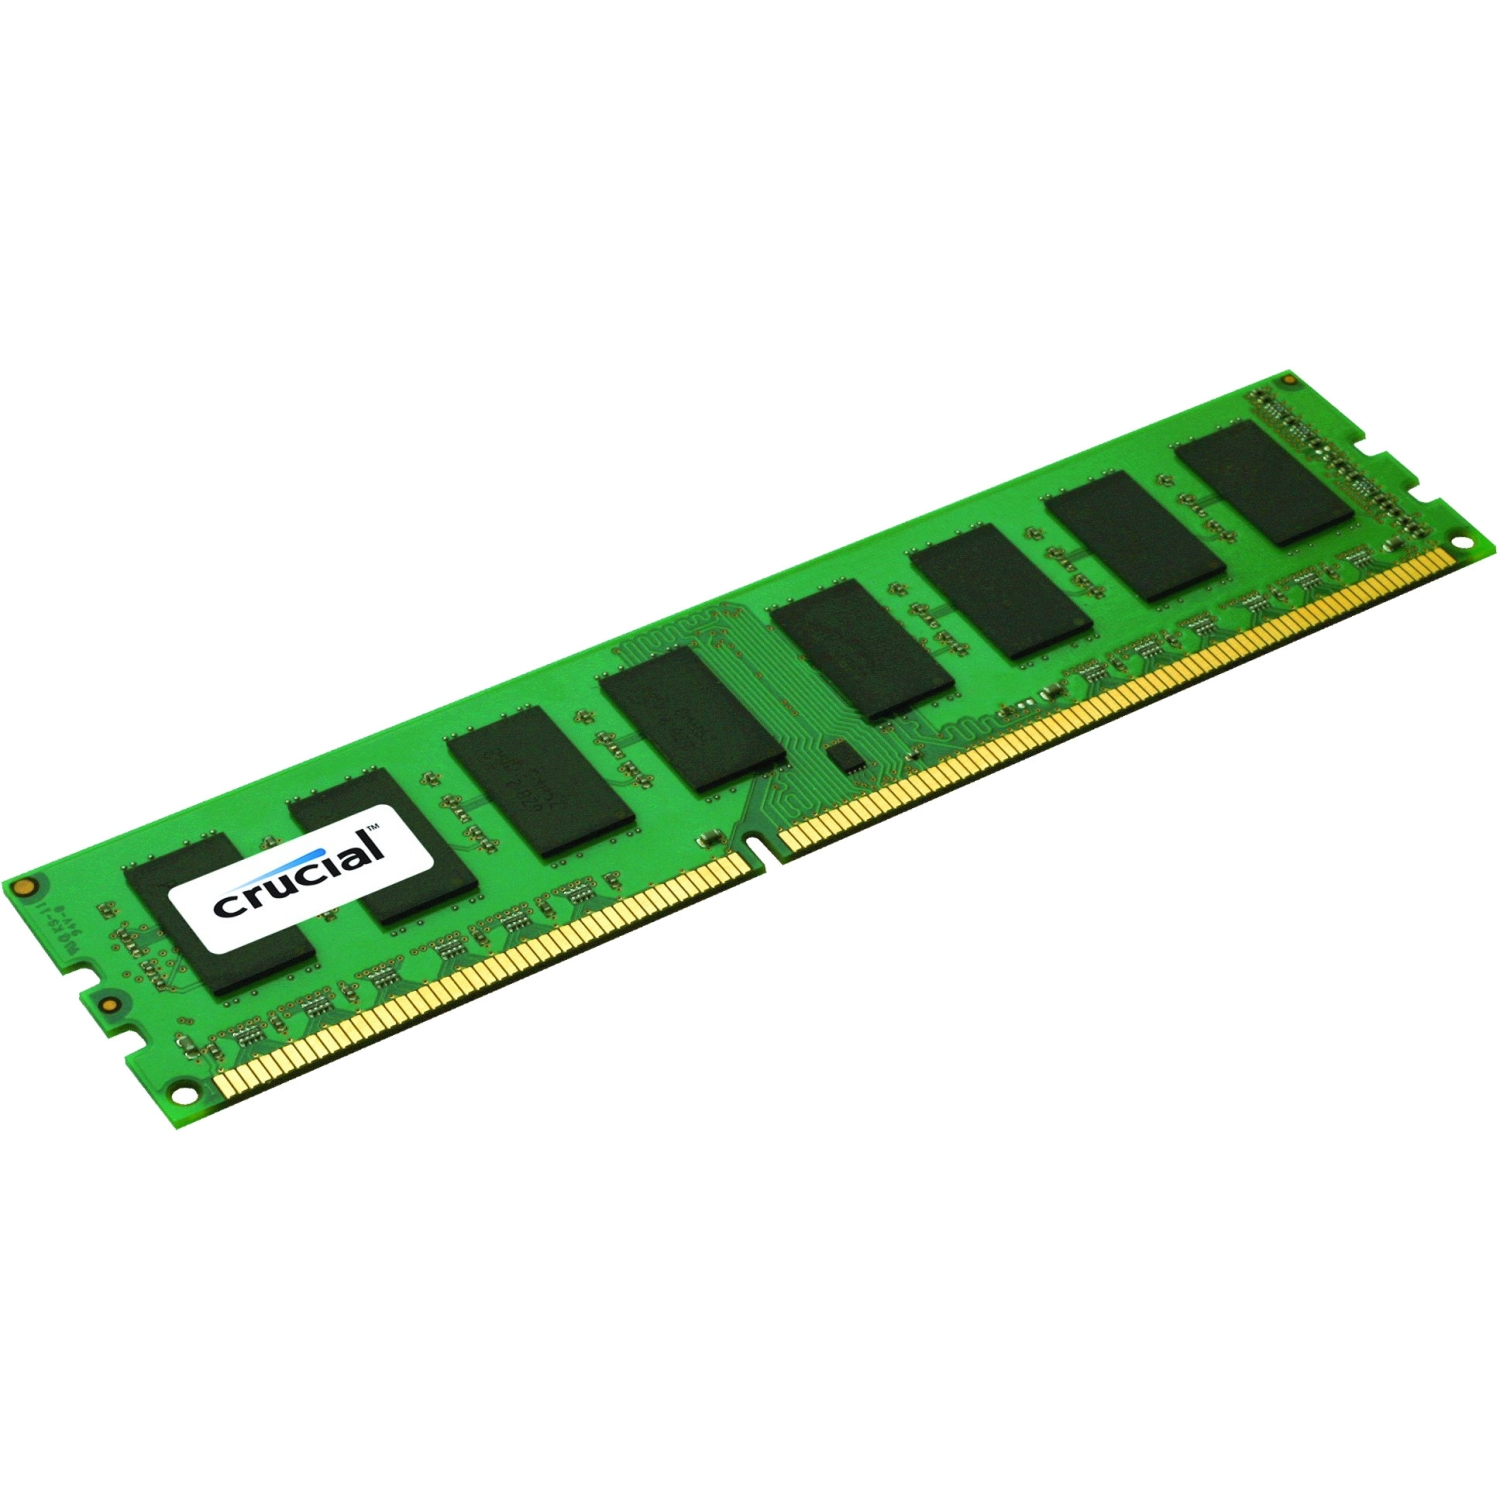 Crucial 16gb, 240-pin Dimm, Ddr3 Pc3-12800 Memory Module - 16 Gb - Ddr3 Sdram - 1600 Mhz Ddr3-1600/pc3-12800 - 1.35 V - Ecc - Registered - 240-pin - Dimm (ct16g3ervld4160b)